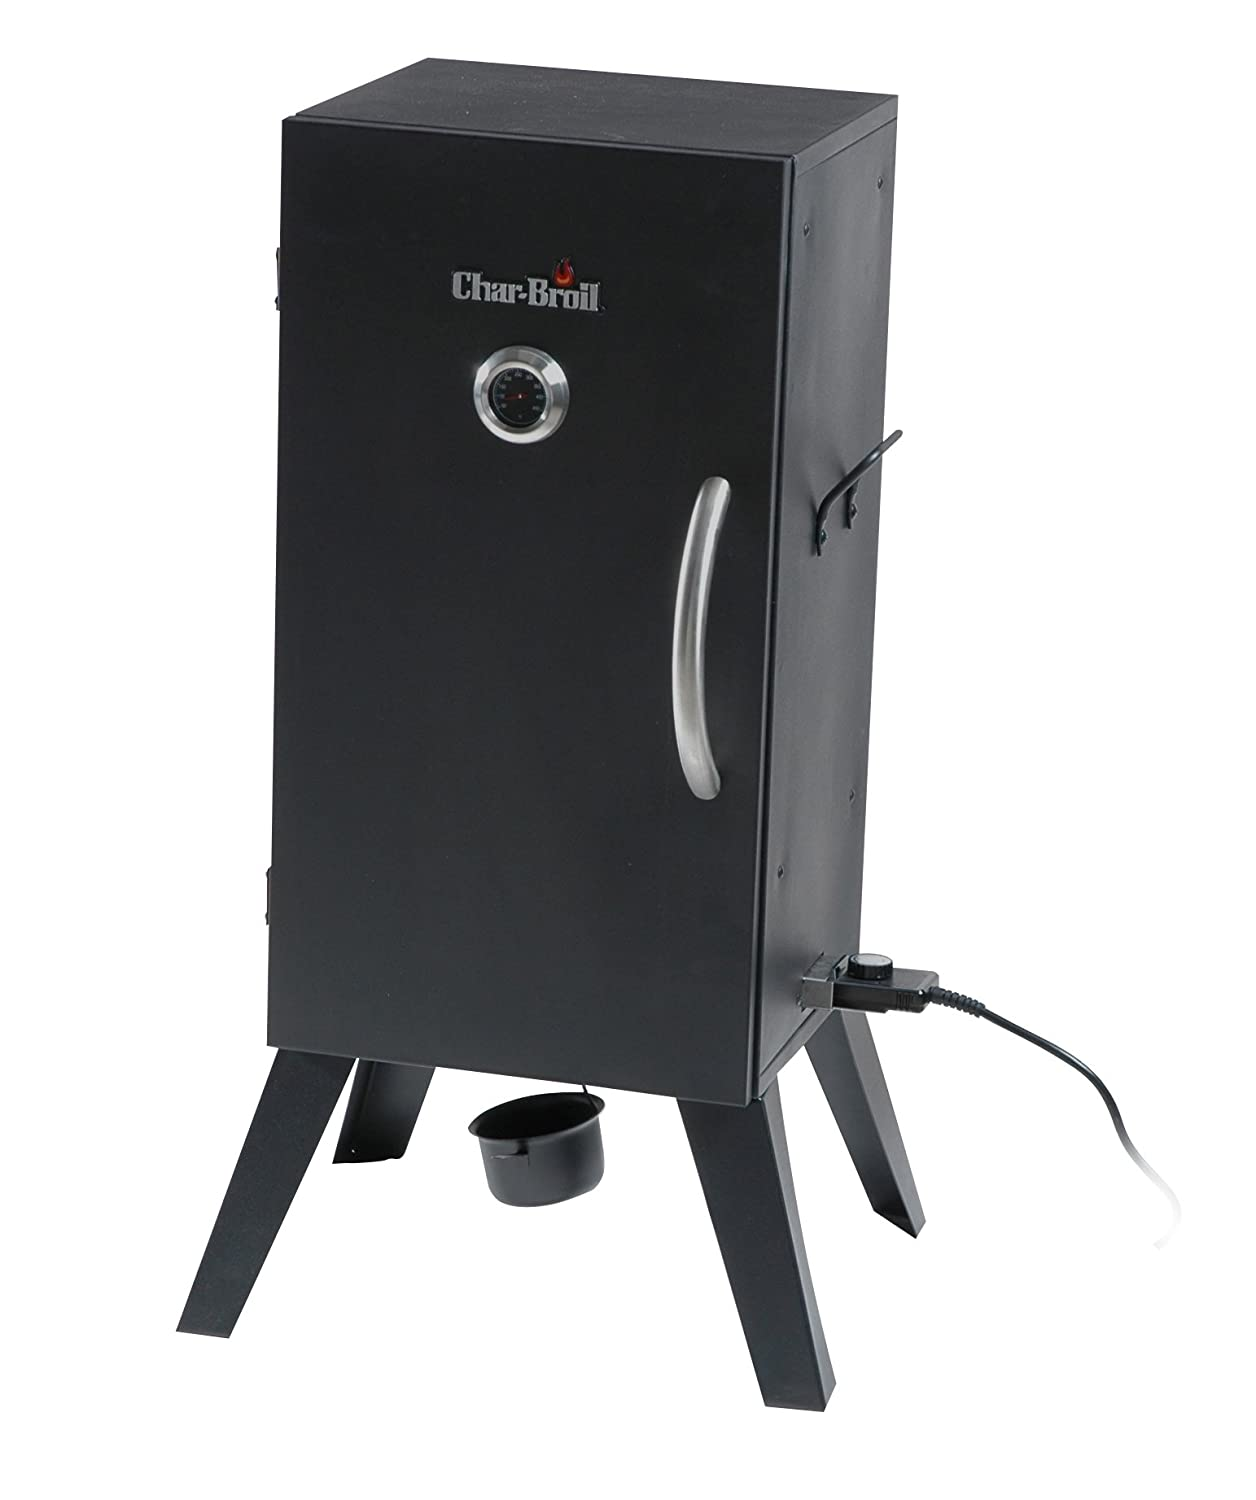 Char-Broil: Vertical Electric Smoker